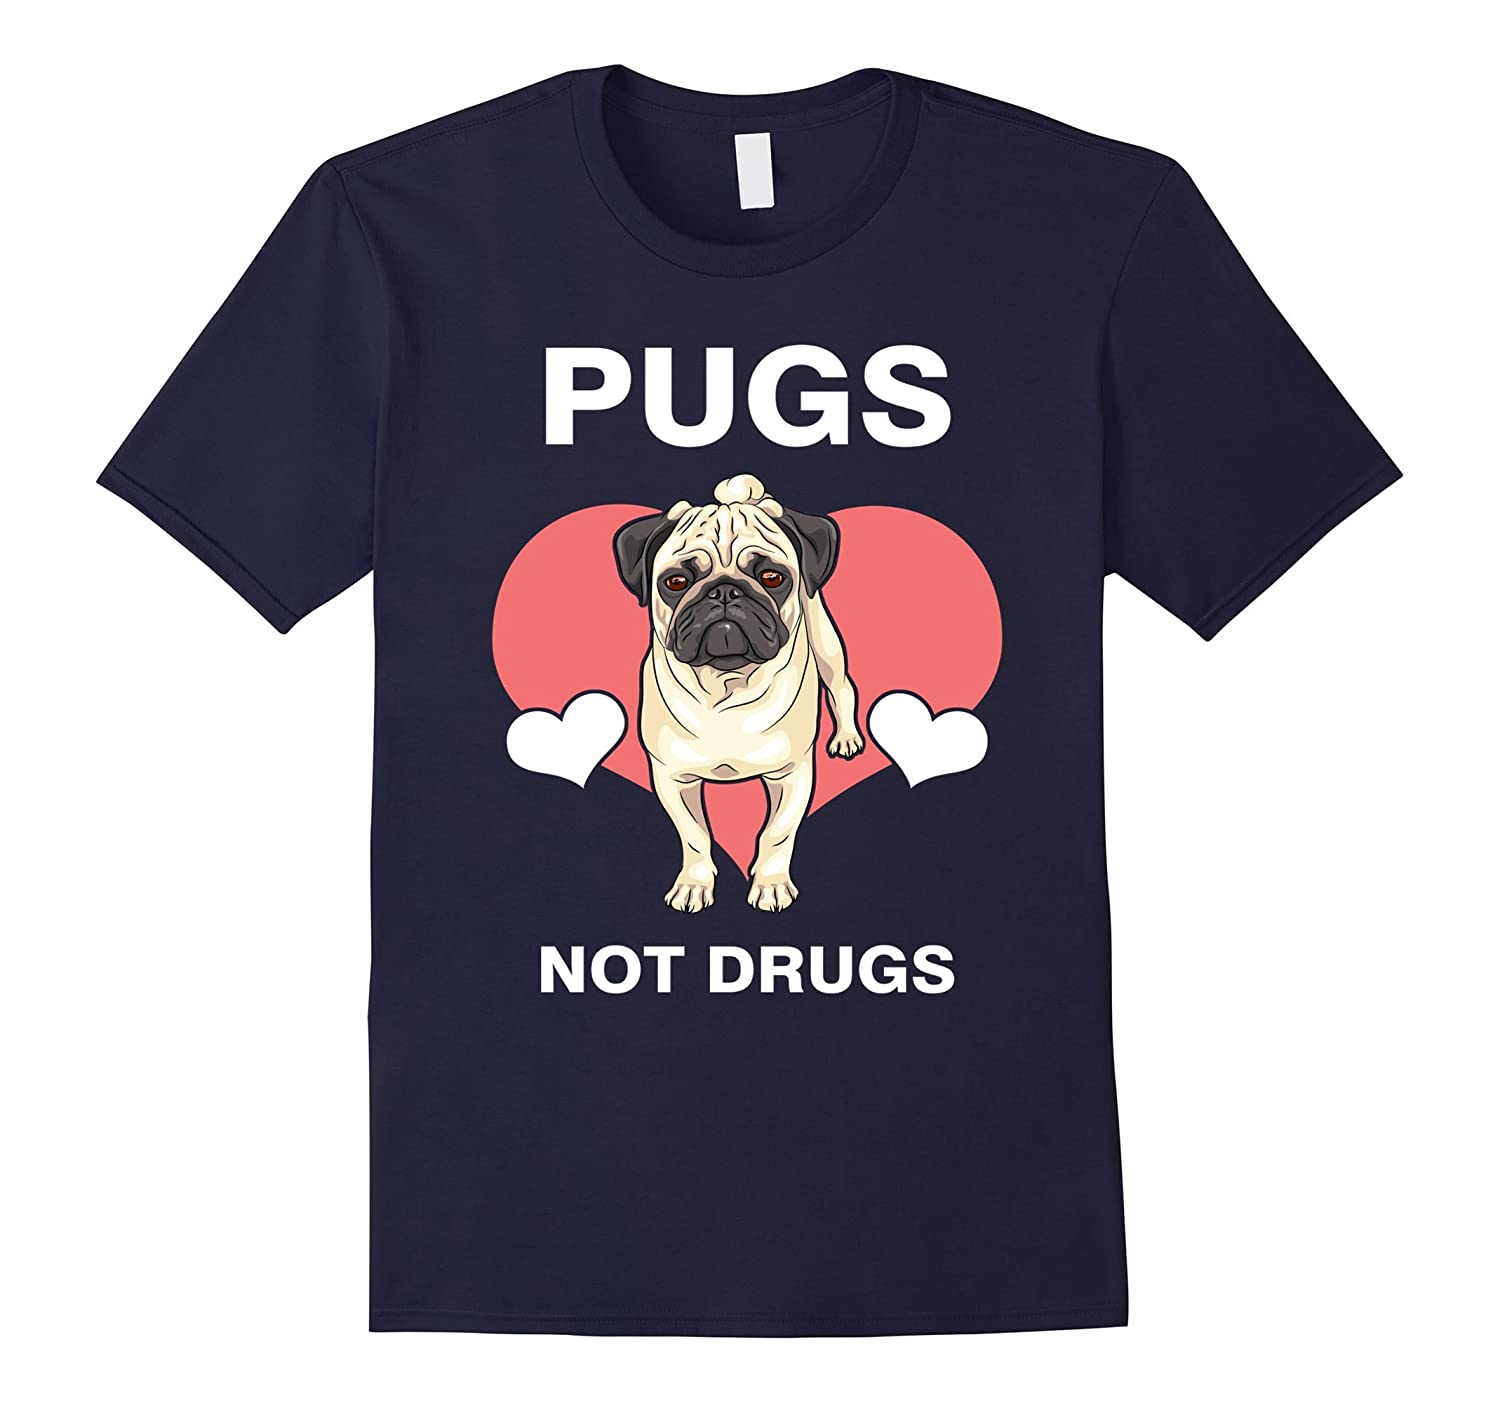 Pugs Not Drugs Tee shirt Pug Lover Gift Tee Funny Pet Dog Owners tshirt Pug T-Shirt-azvn